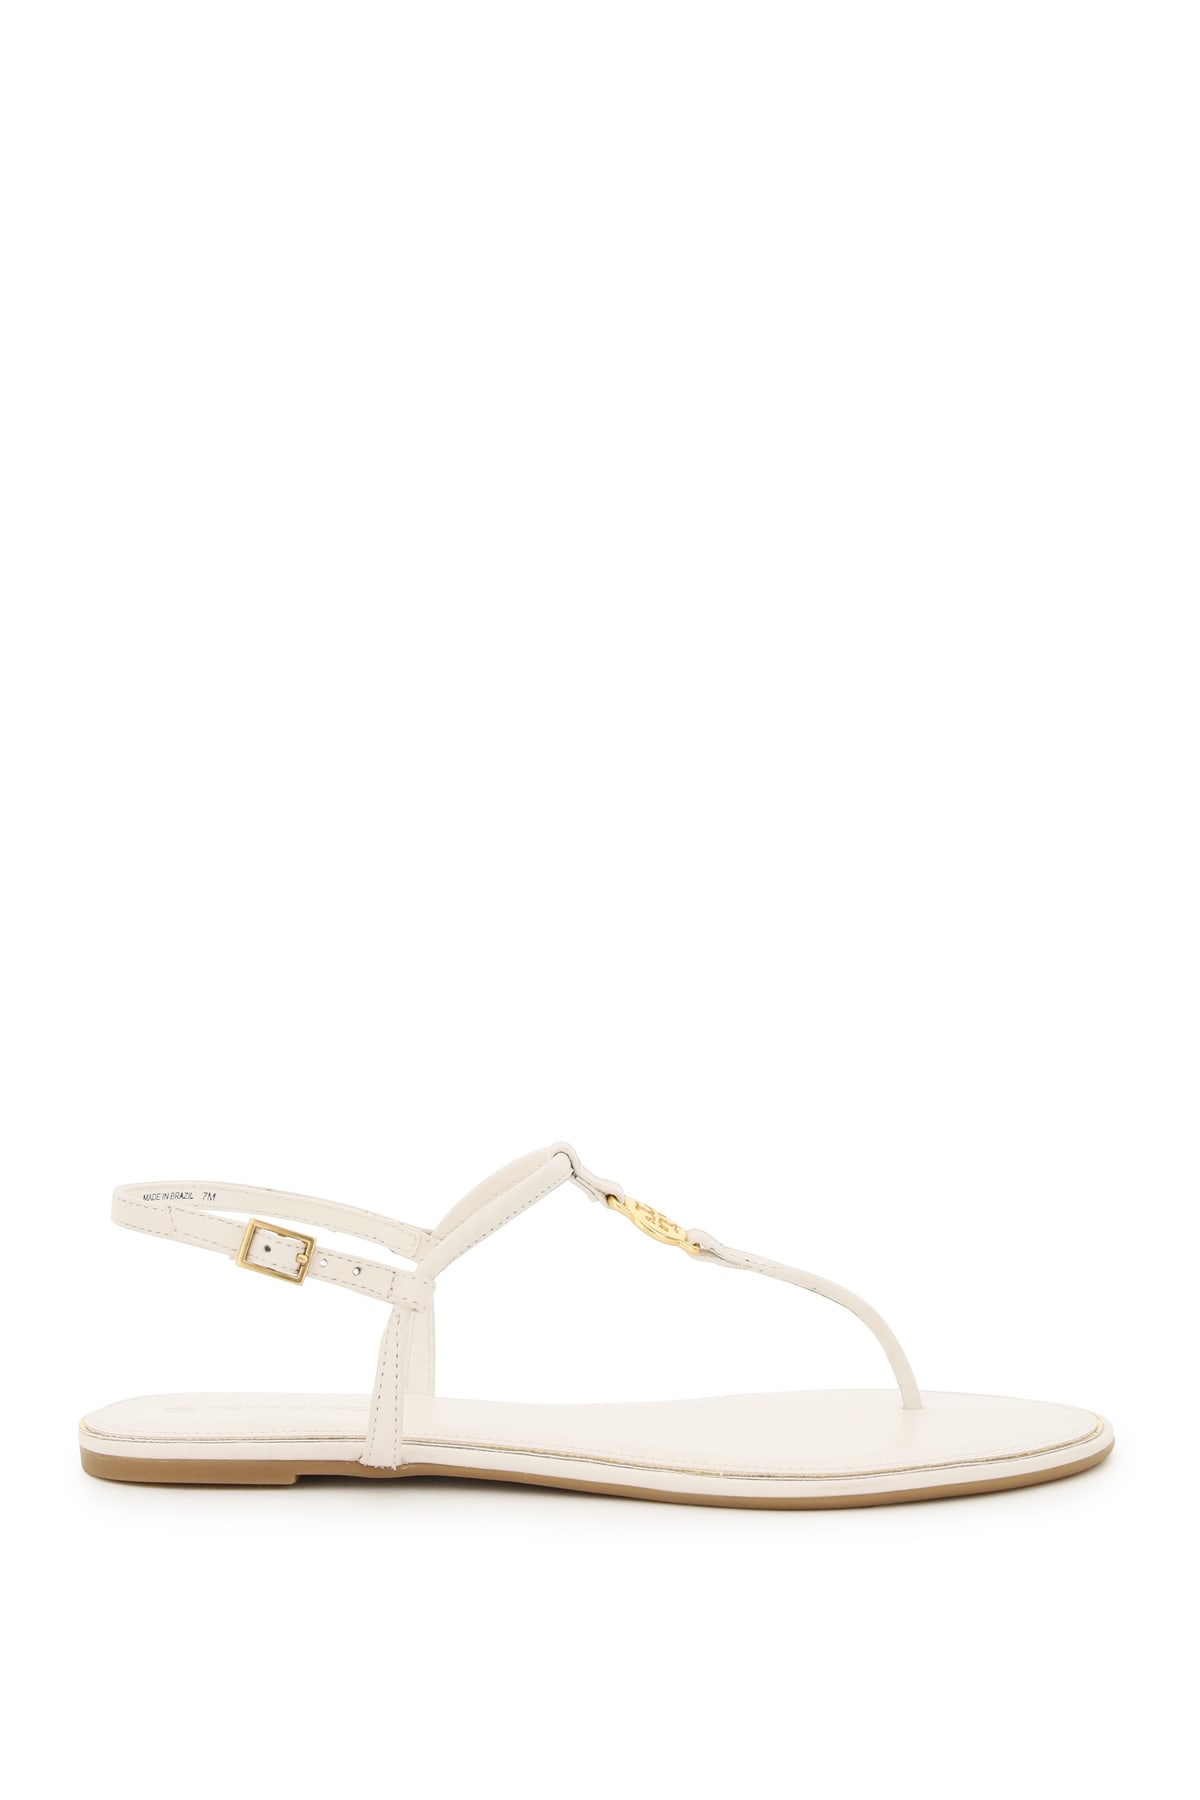 Buy Tory Burch Emmy Flat Thong Sandals online, shop Tory Burch shoes with free shipping